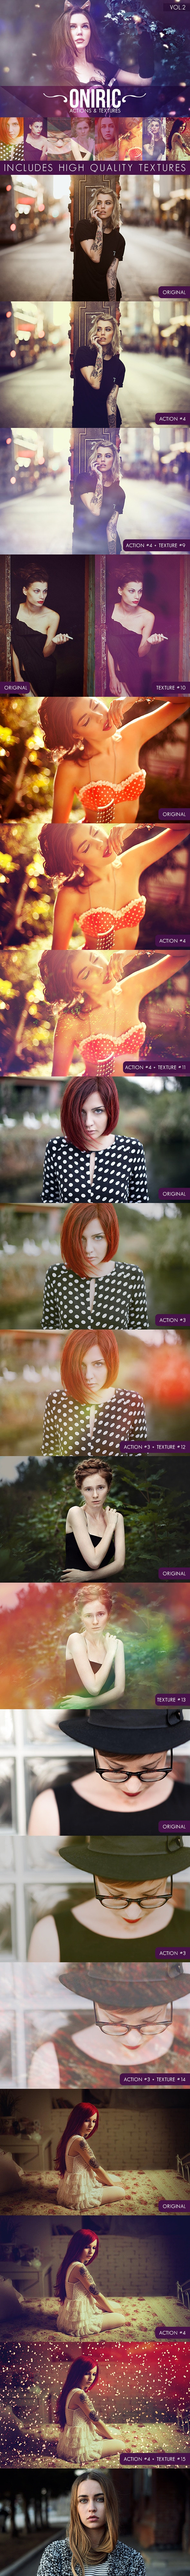 Oniric Actions and Textures Vol.2 - Photo Effects Actions